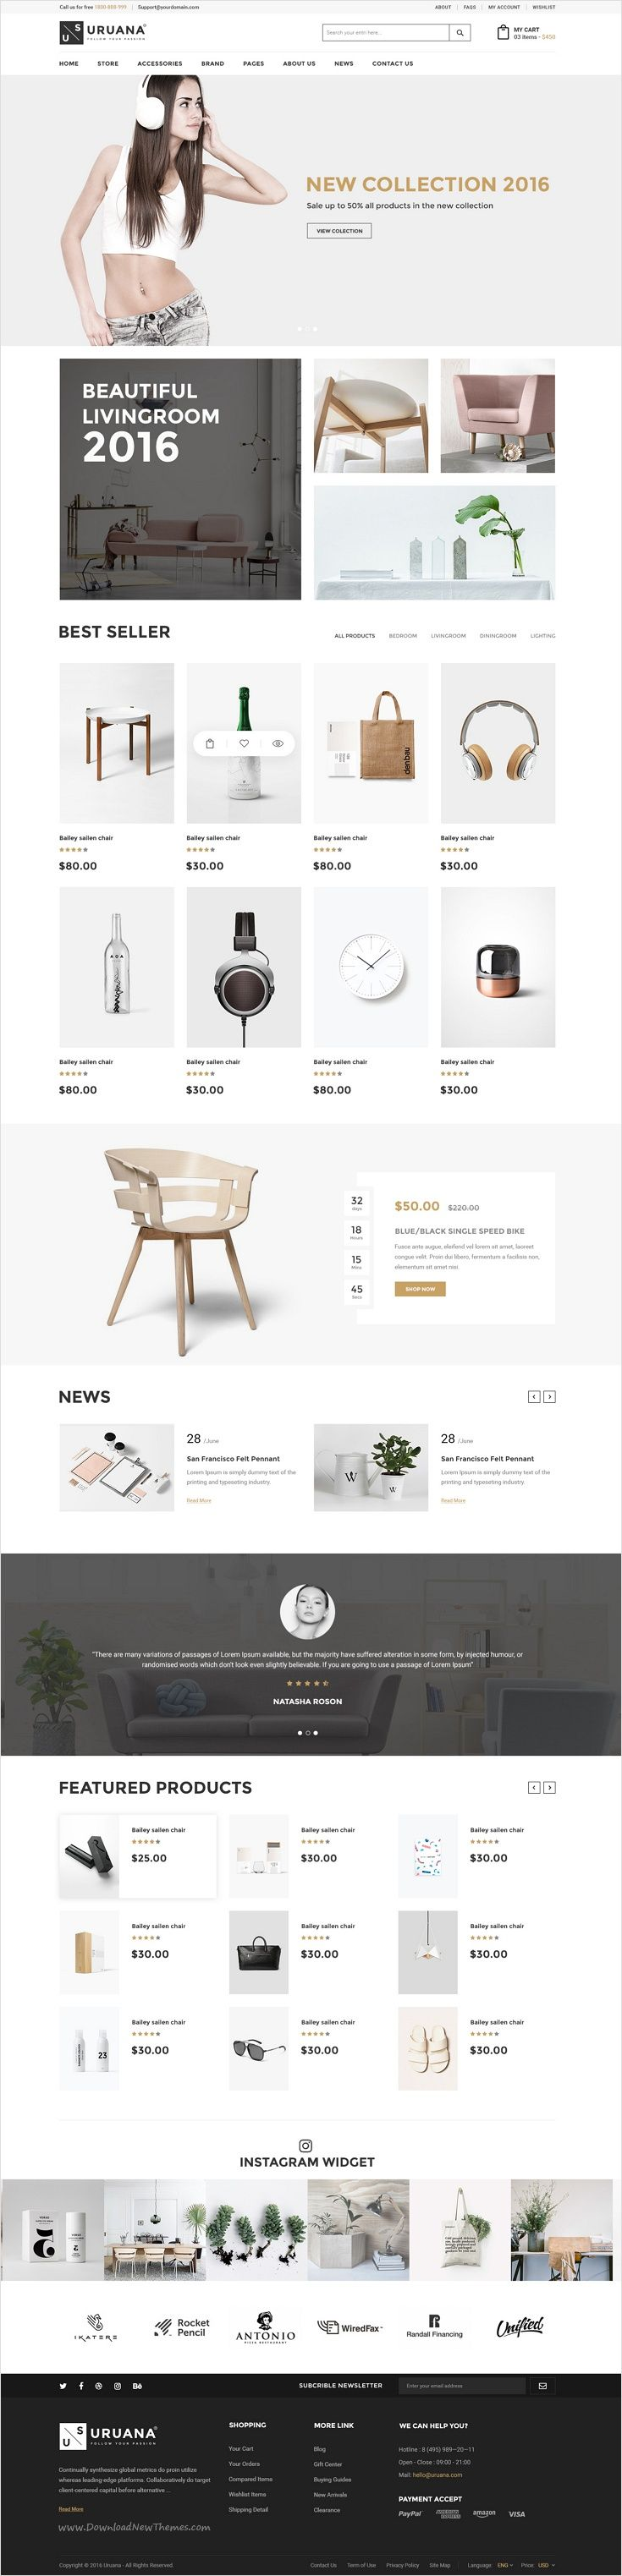 Uruana is uniquly design  PSD template for stunning  furniture  shop  eCommerce website with. 25  trending Ecommerce website design ideas on Pinterest   Web